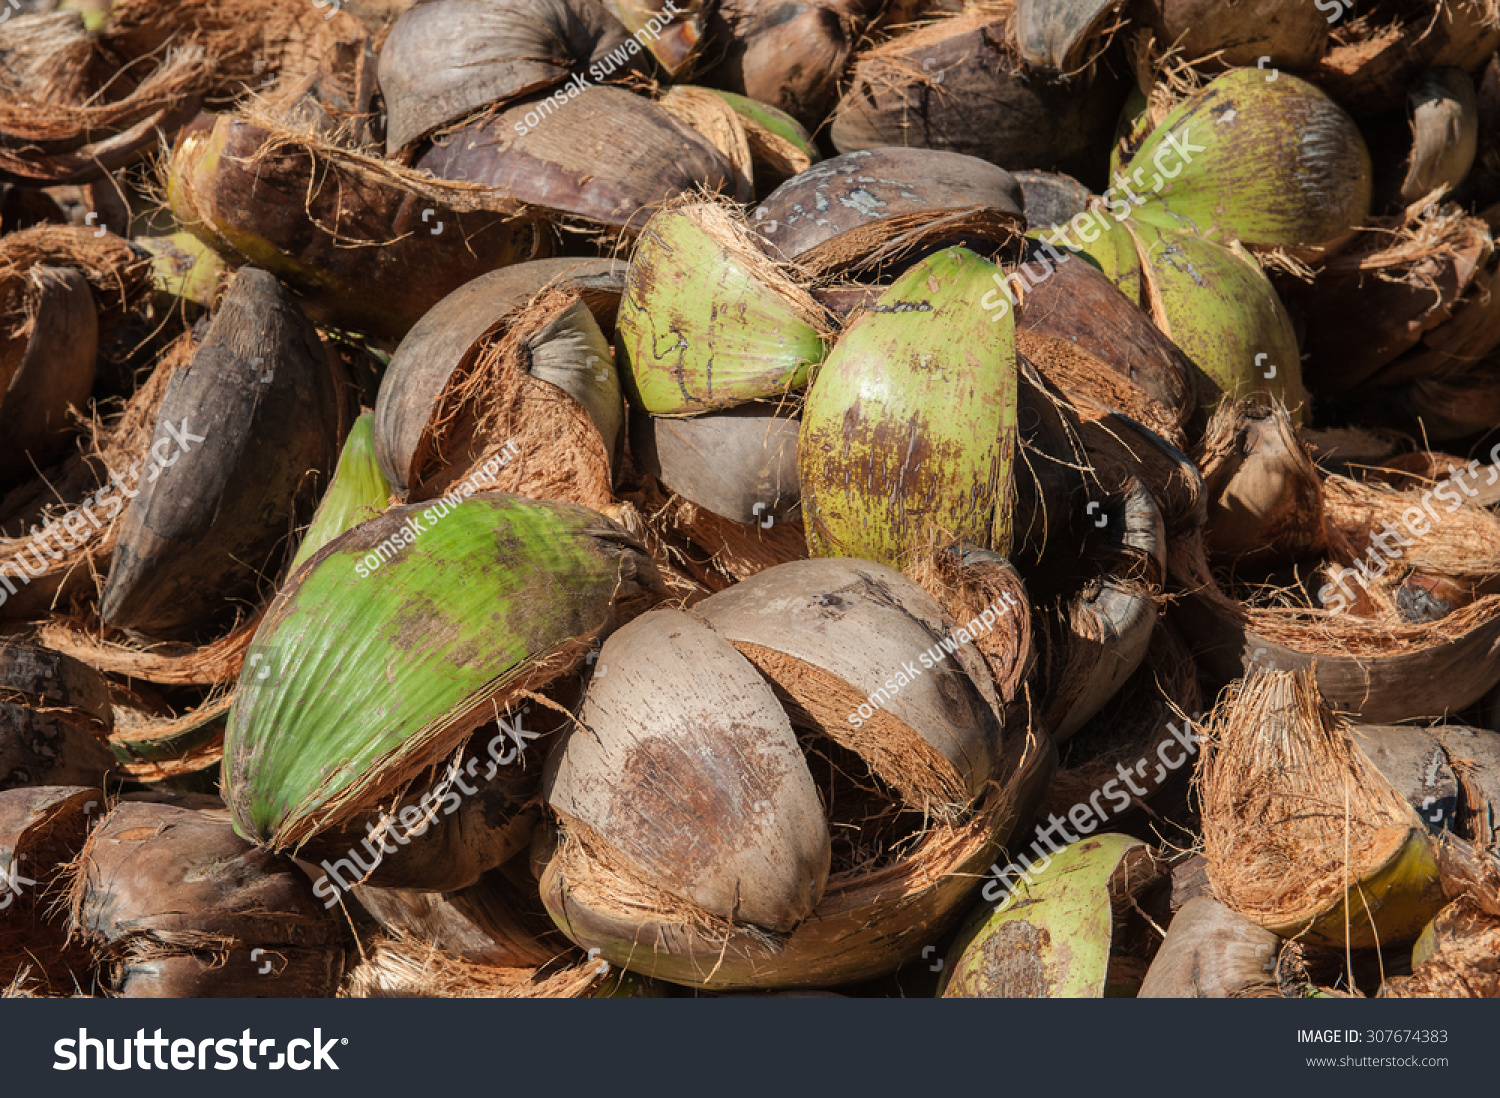 how to get to the husk of a coconut